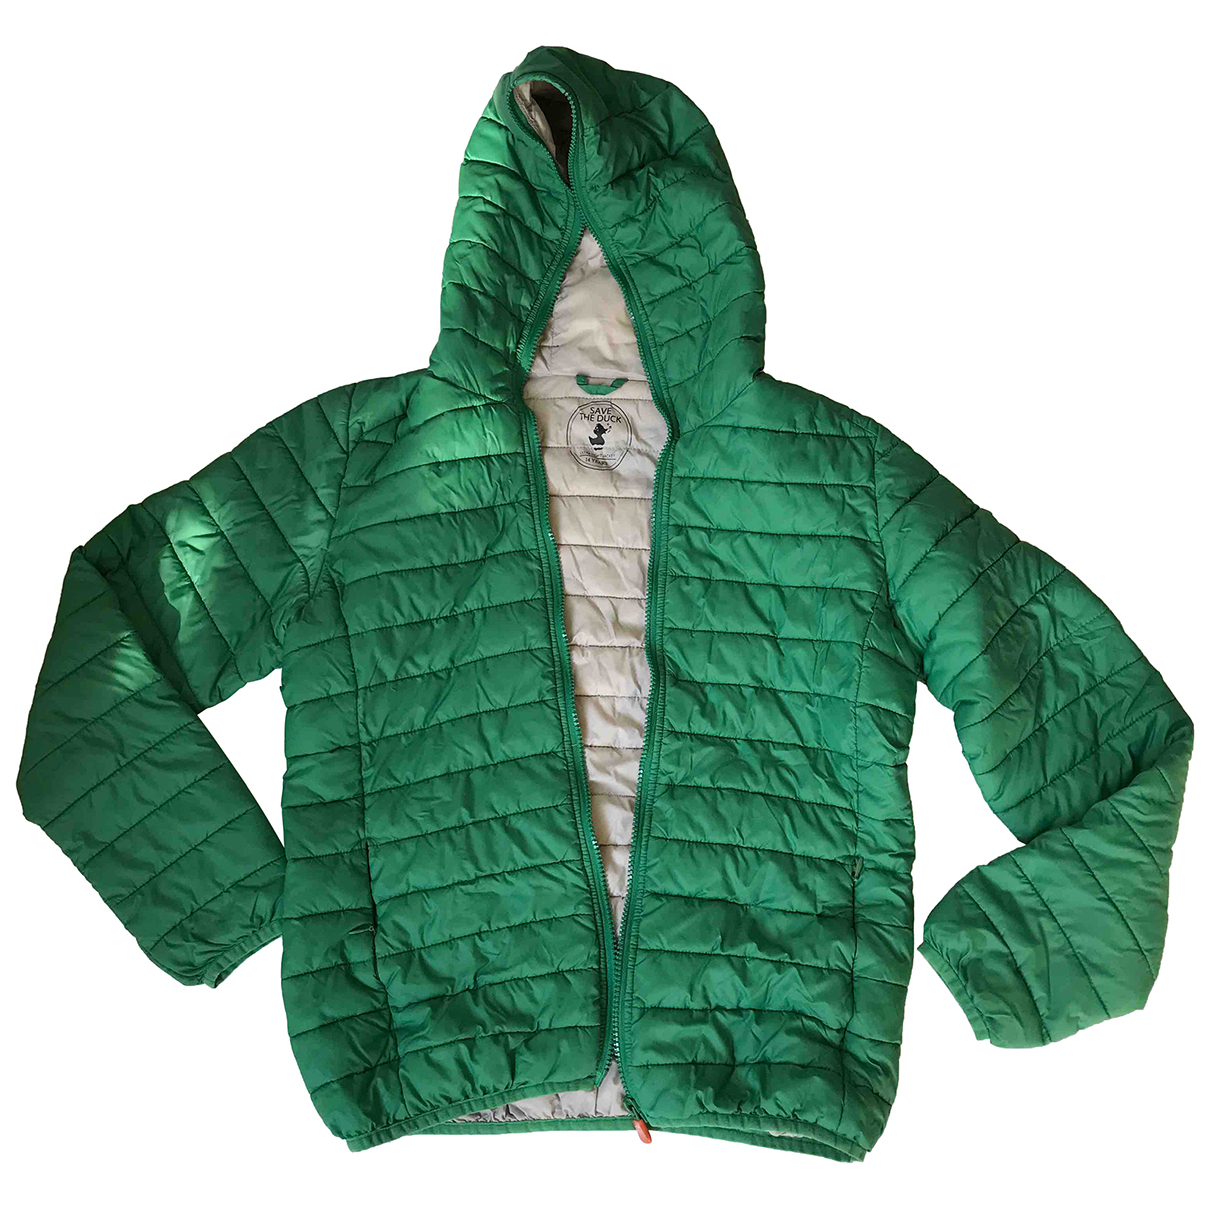 Save The Duck N Green jacket & coat for Kids 14 years - S UK